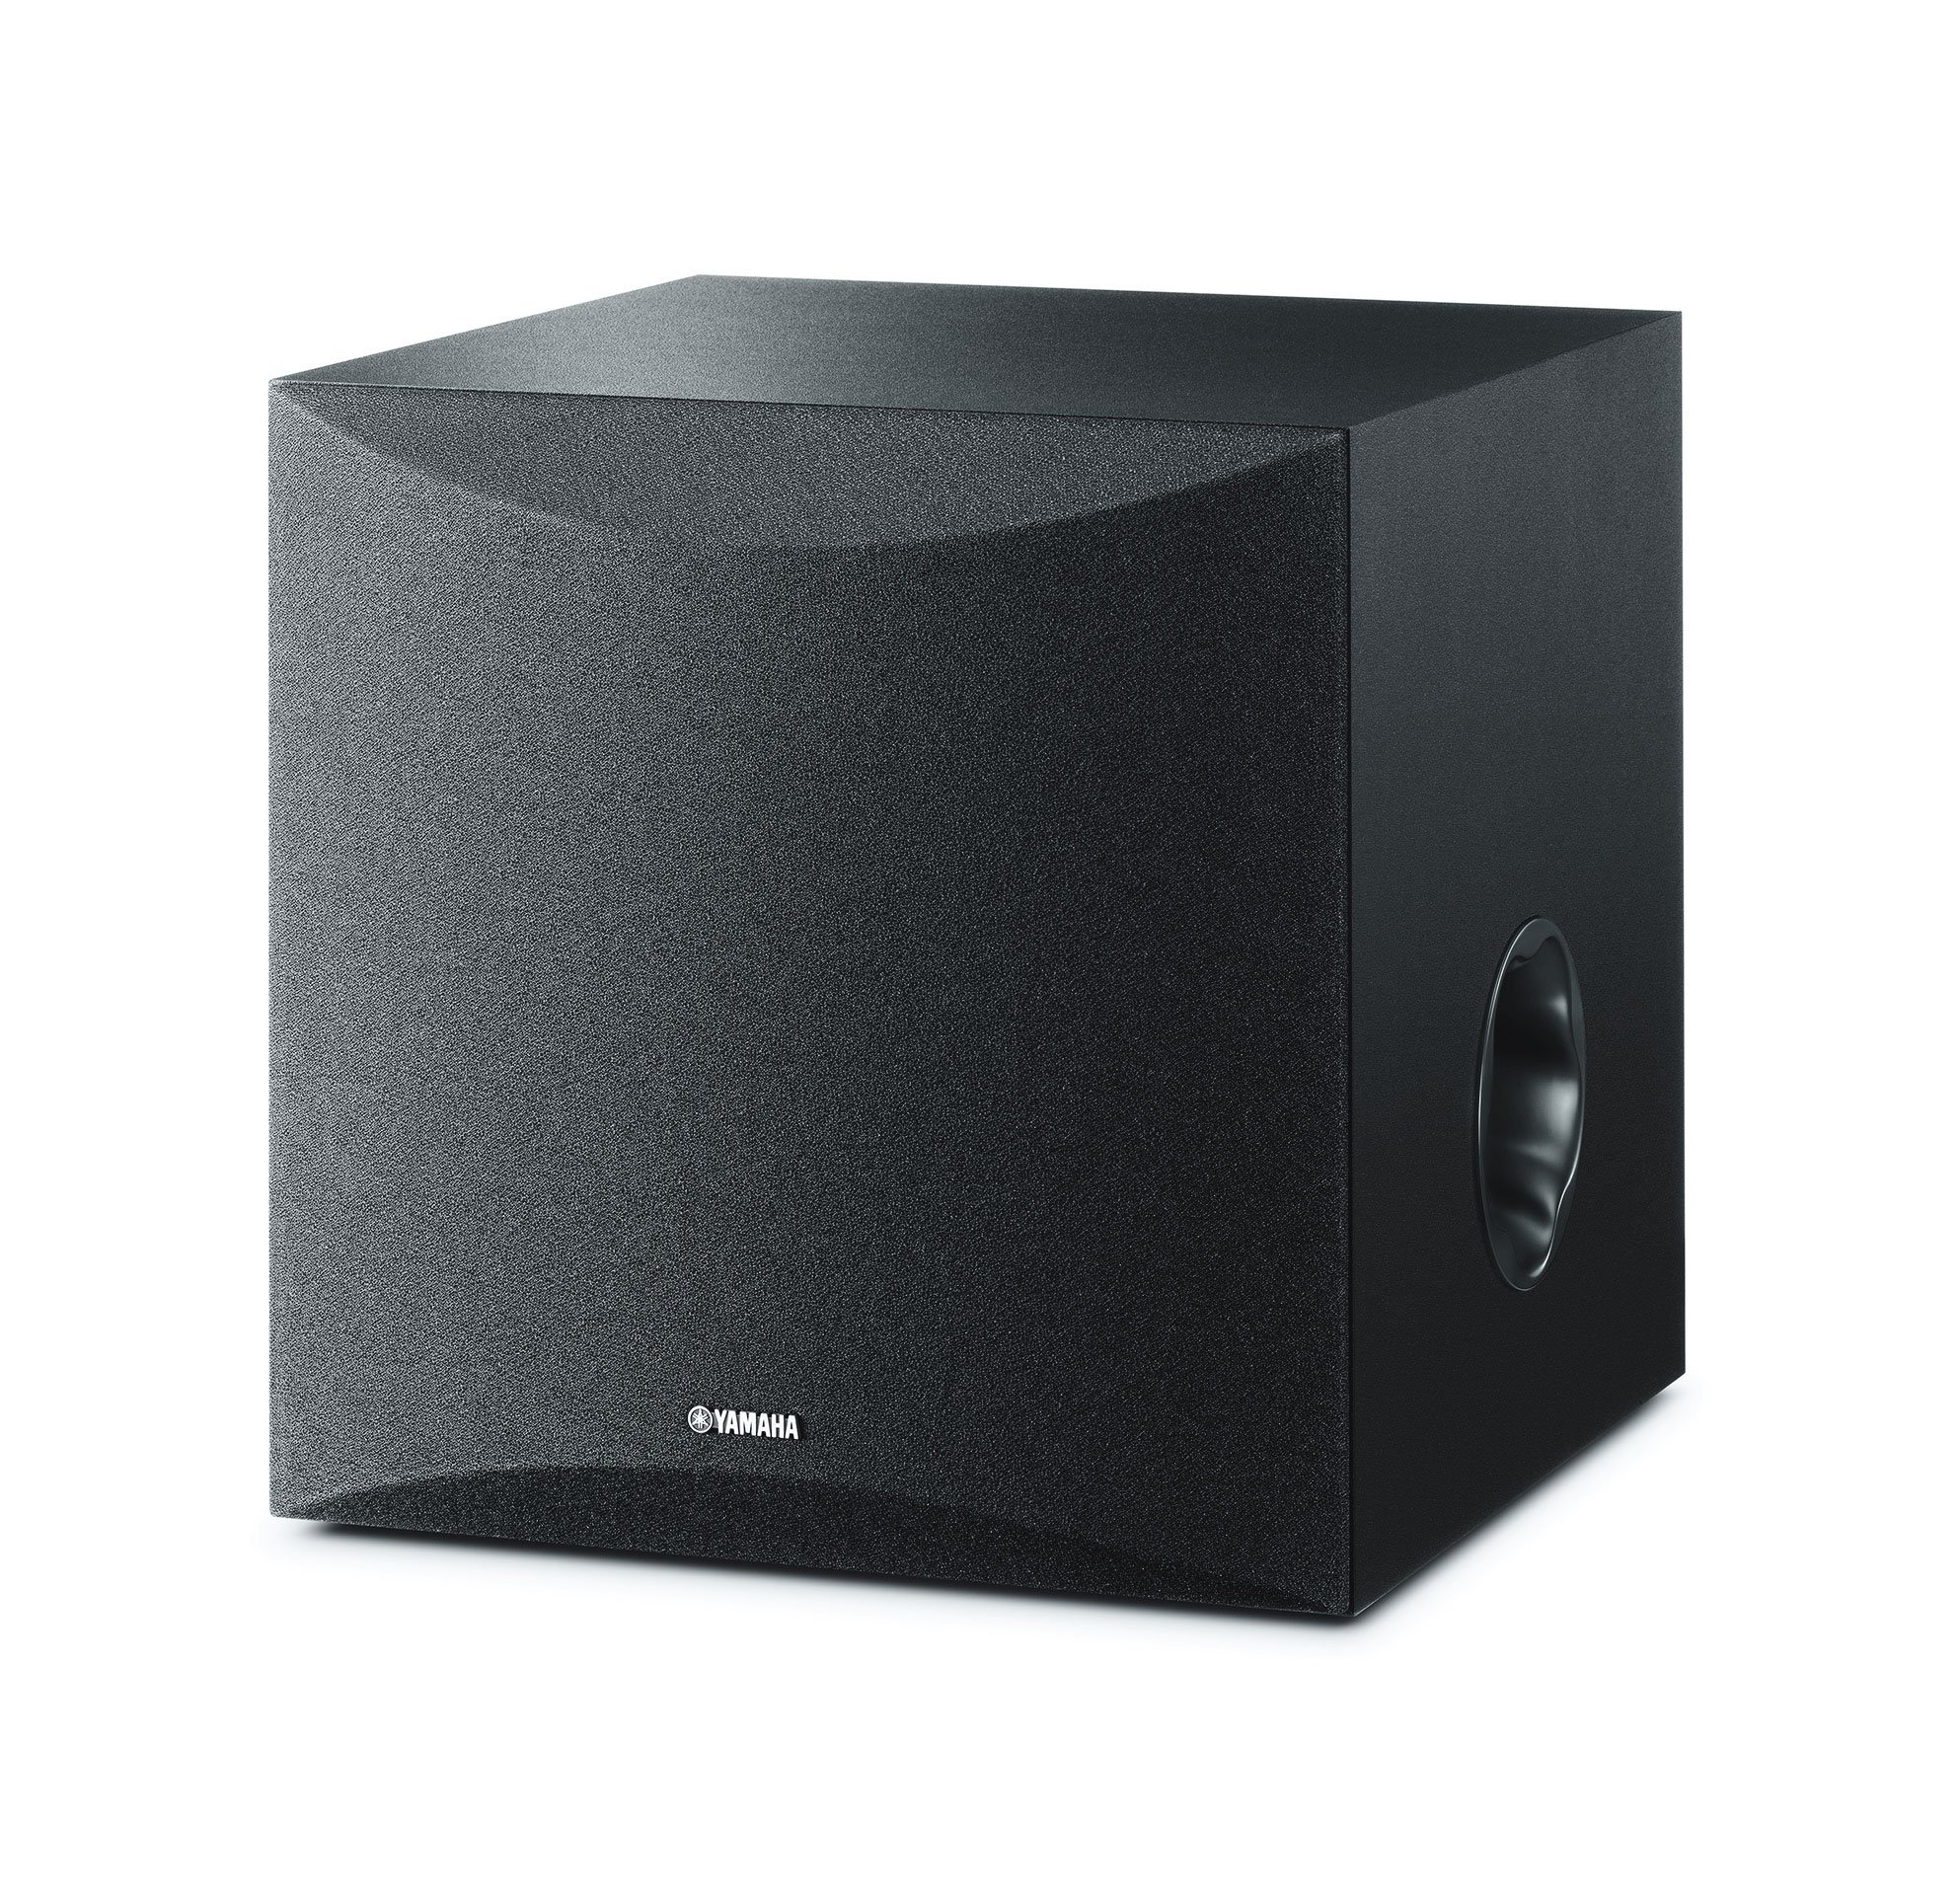 Yamaha 8'' 100W Powered Subwoofer - Black (NS-SW050BL) by Yamaha